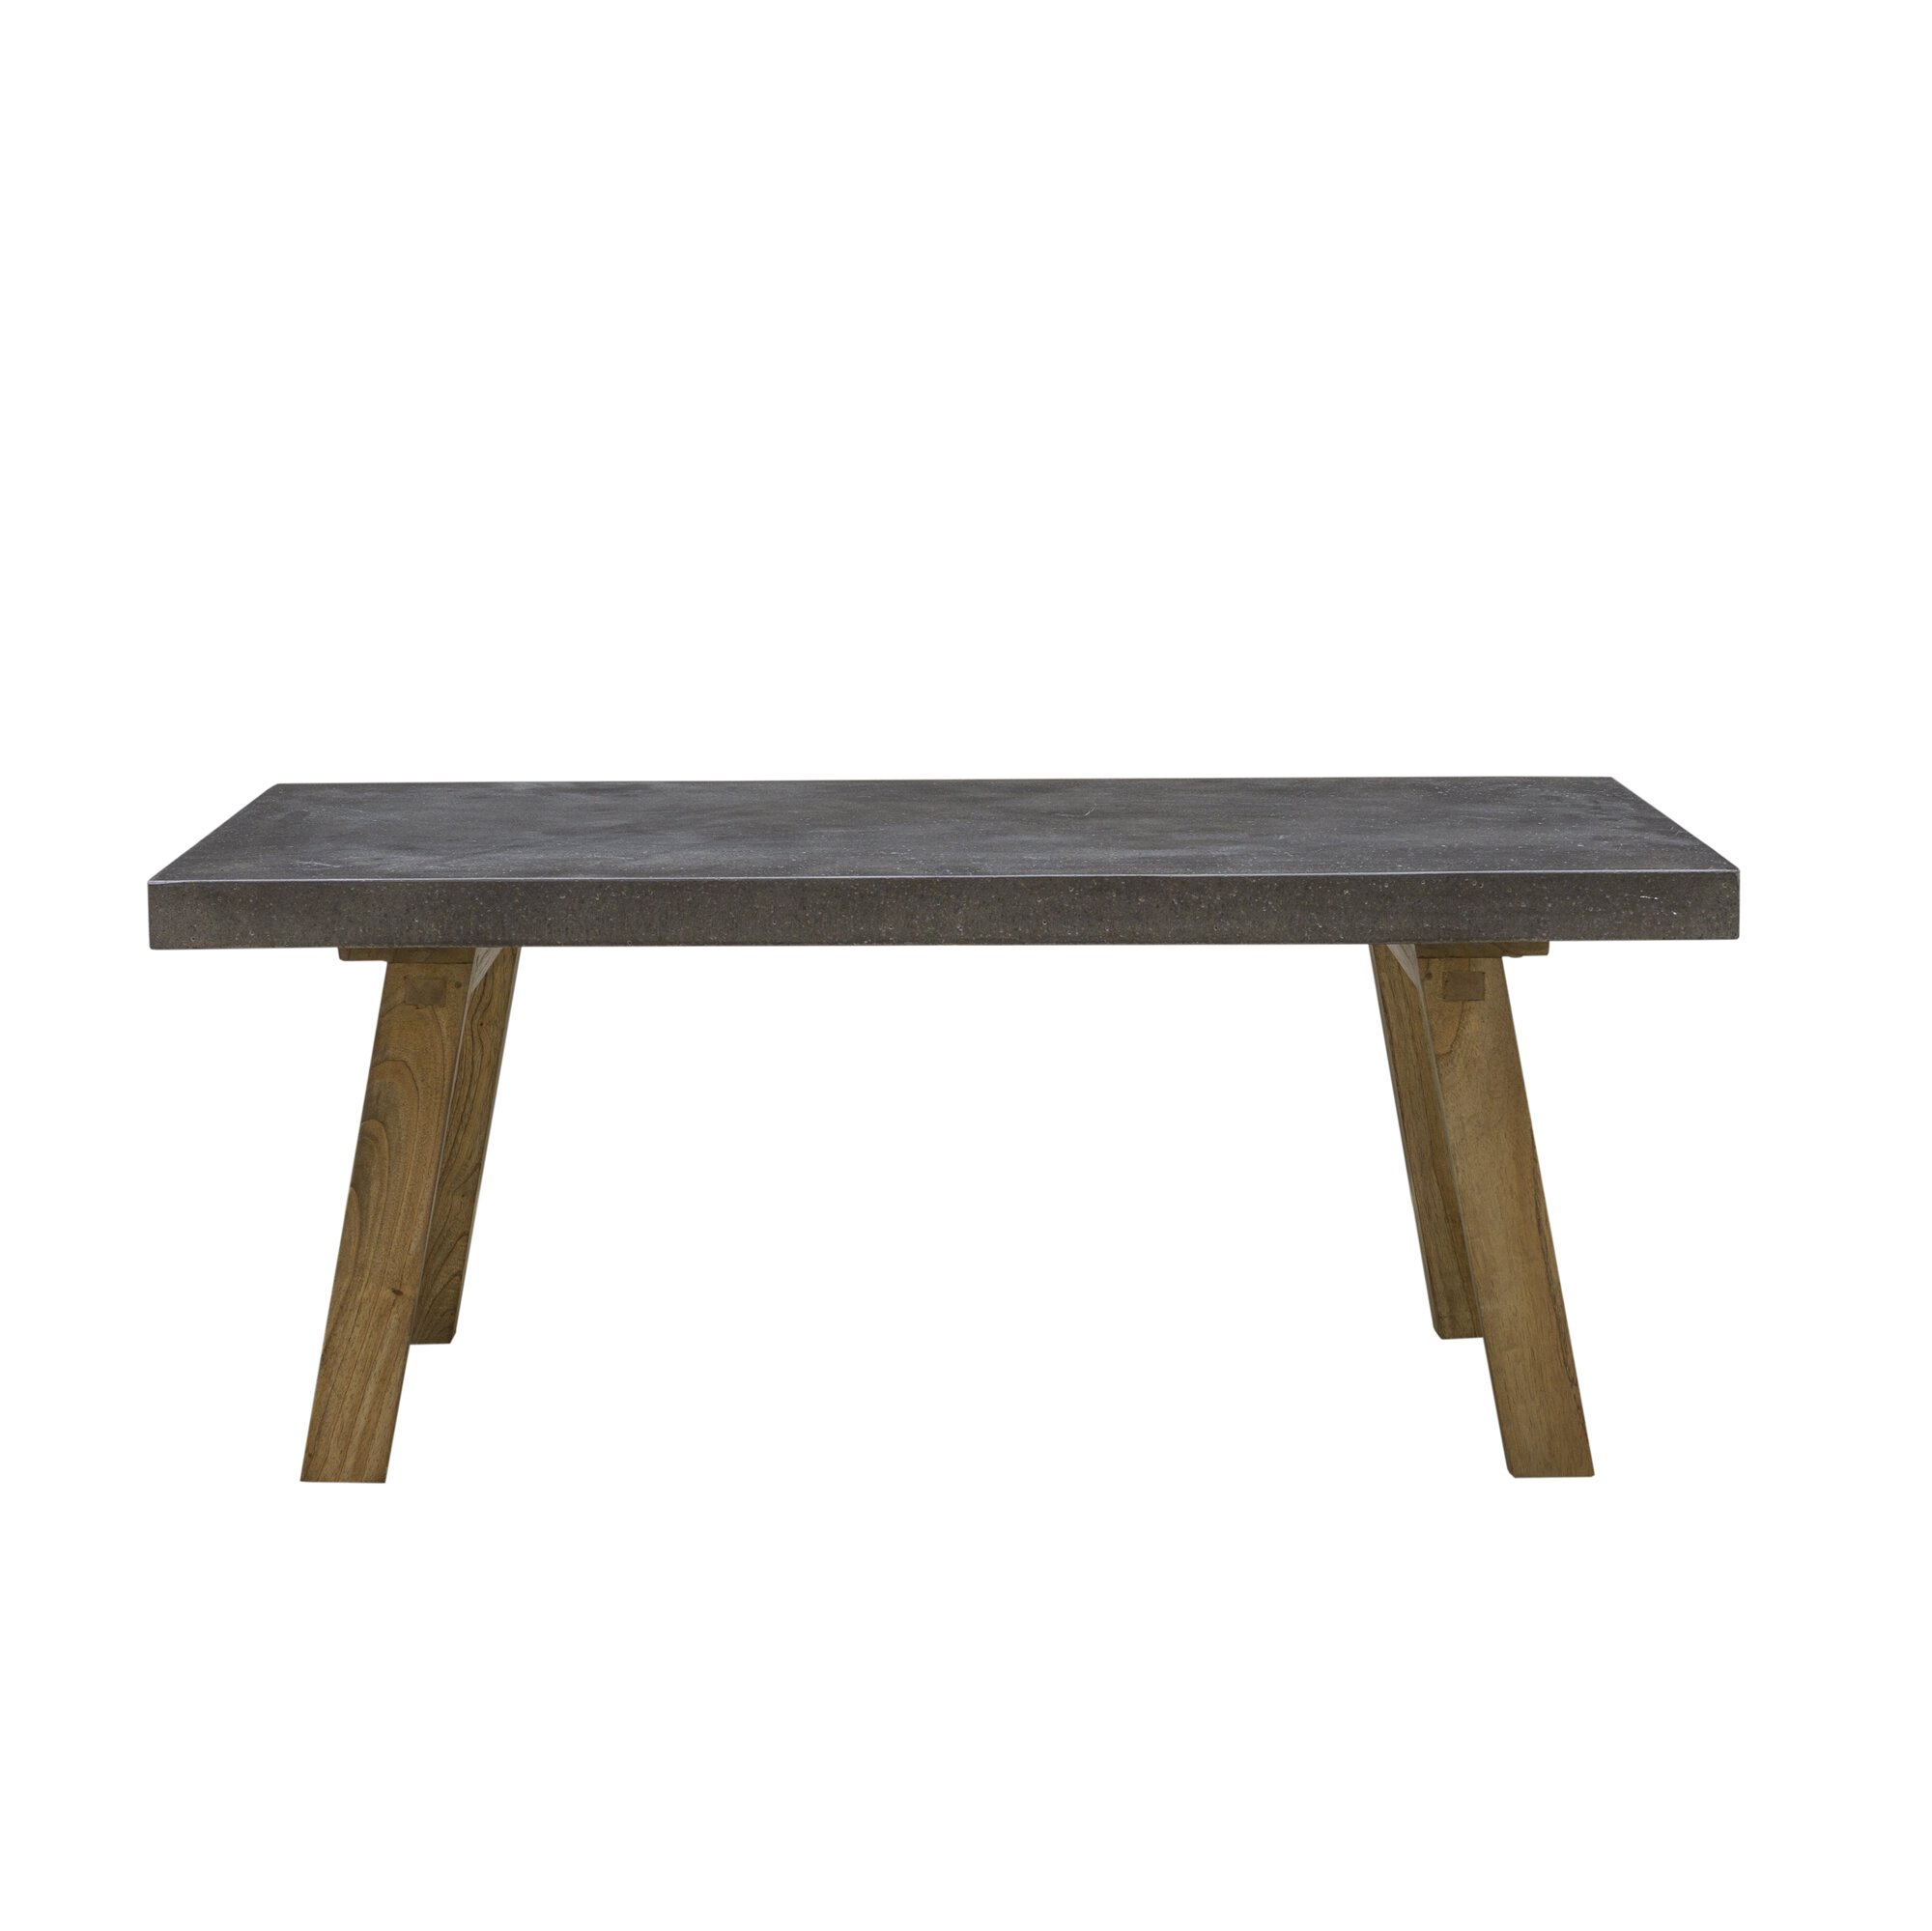 Industrial Coffee Table With Solid Cement Top & Wooden Legs